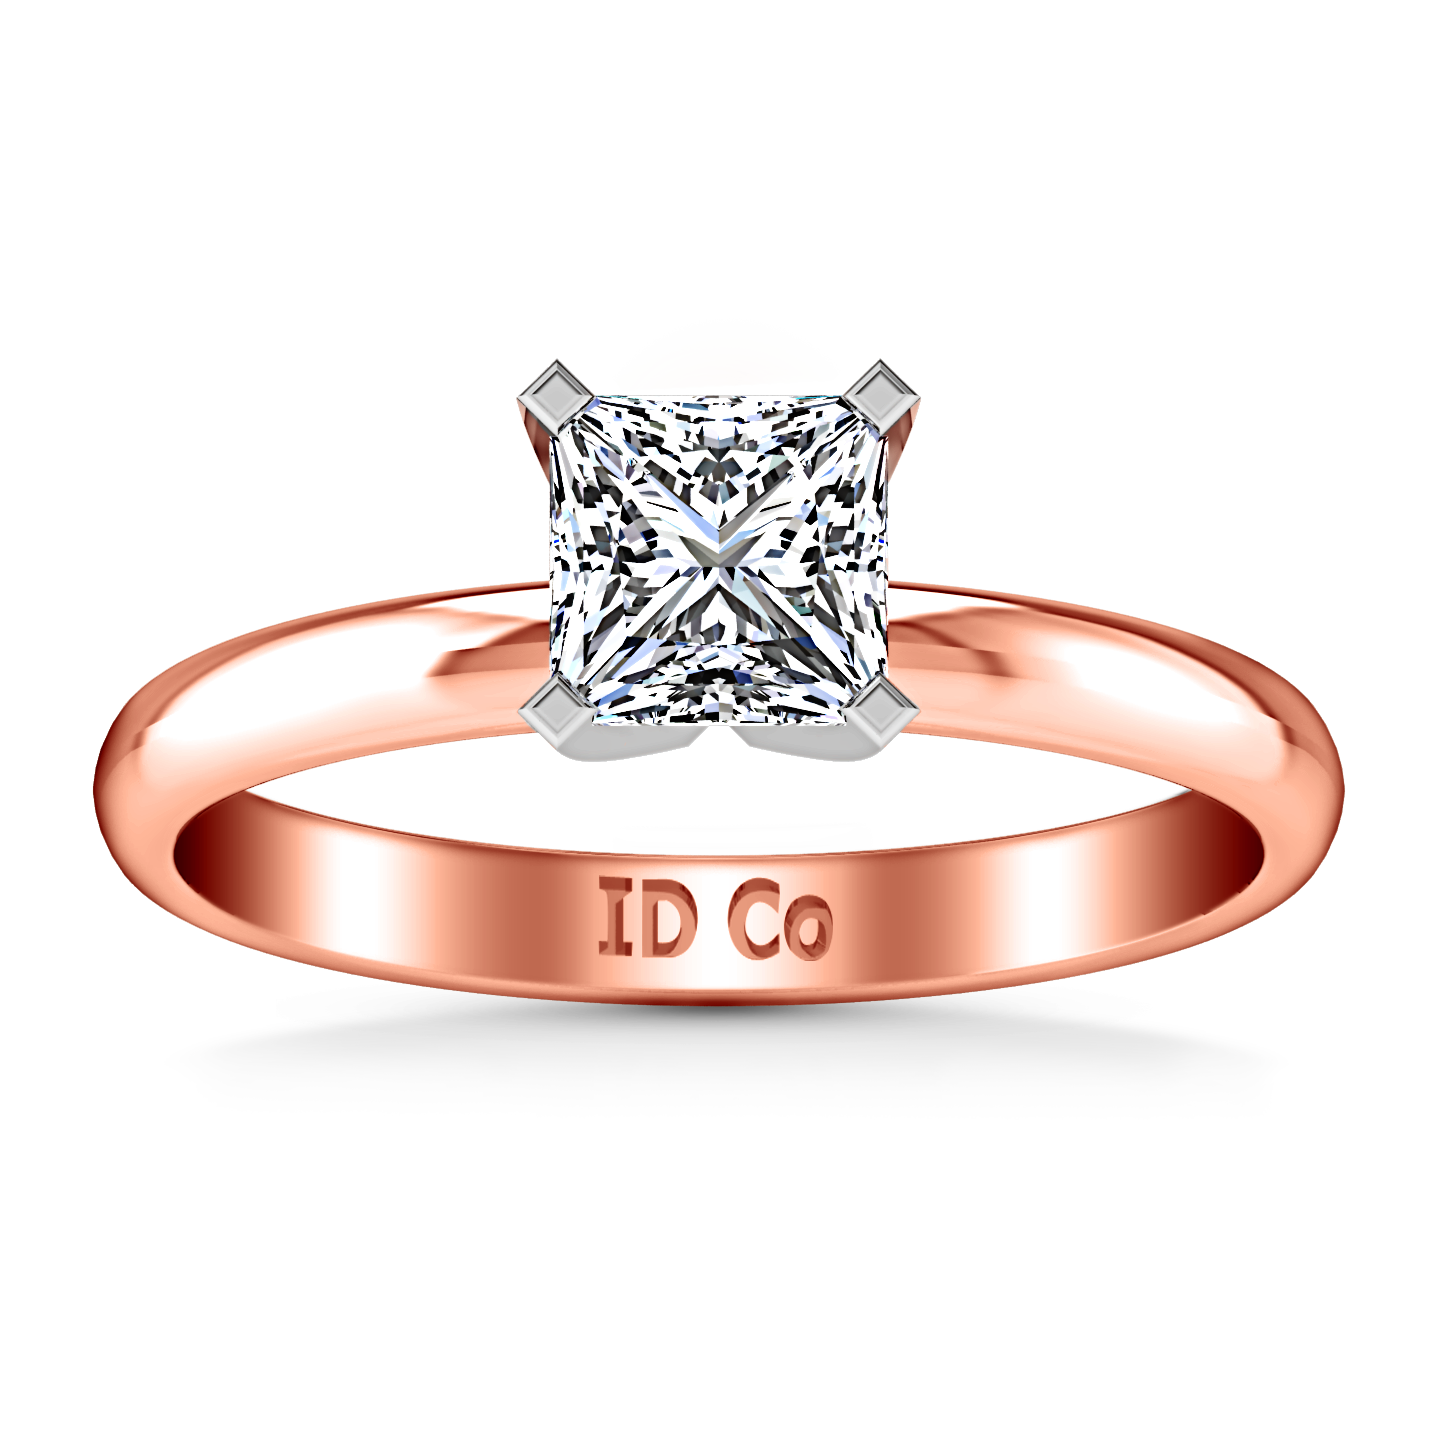 Solitaire Princess Cut Engagement Ring Comfort Fit 14K Rose Gold – Imagine  Diamonds 053be44d1